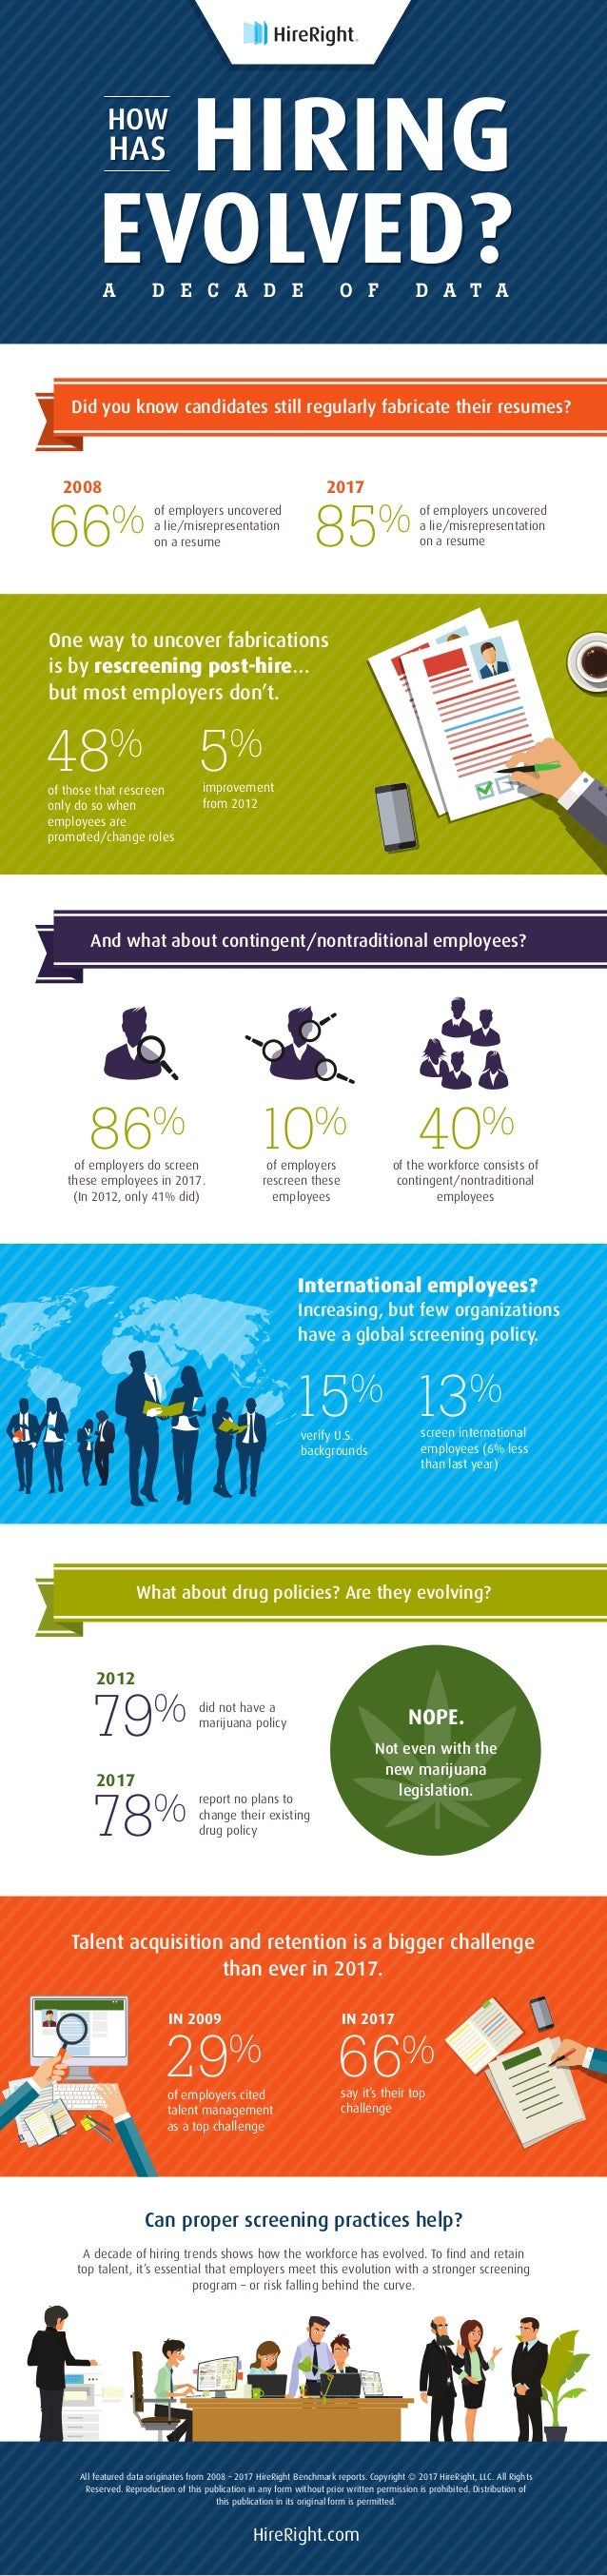 HIRING EVOLVED? HOW of those that rescreen only do so when employees are promoted/change roles 48% improvement from 2012 5...